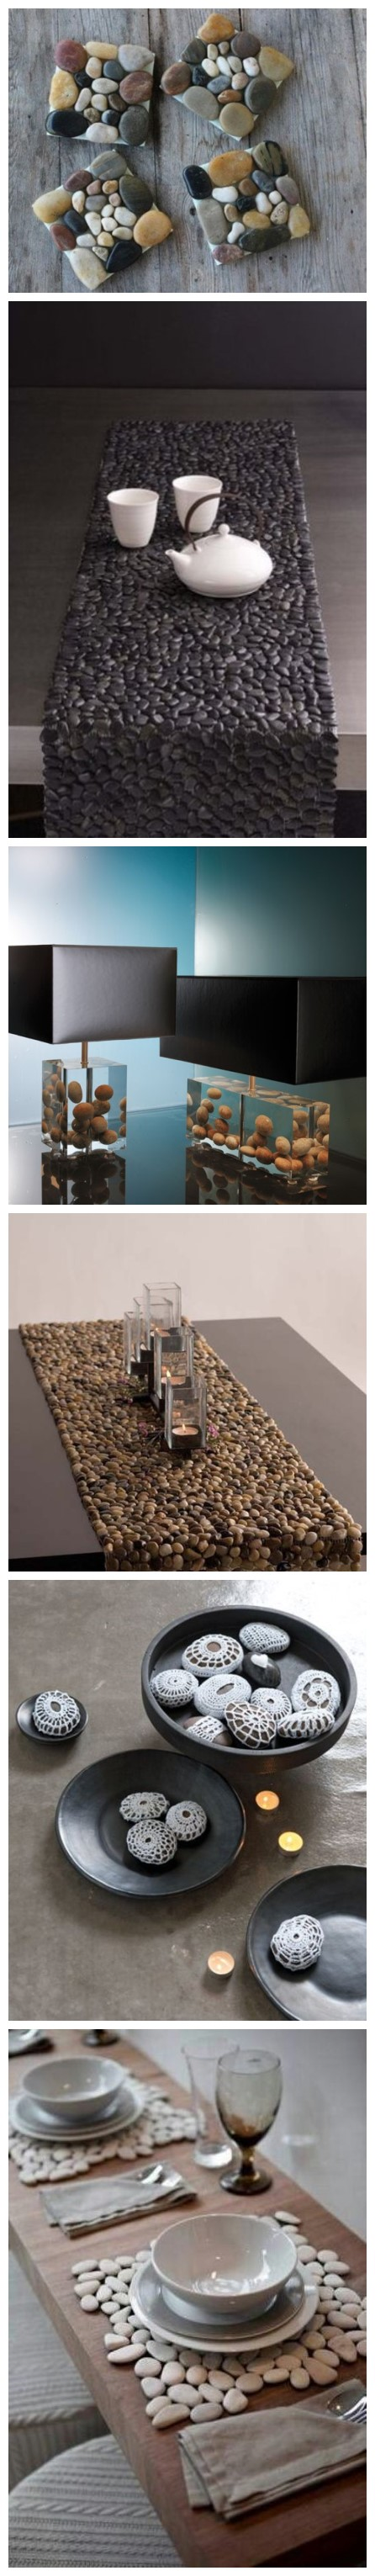 28 Ideas To Incorporate Pebbles Into Your HOme Decoration 3